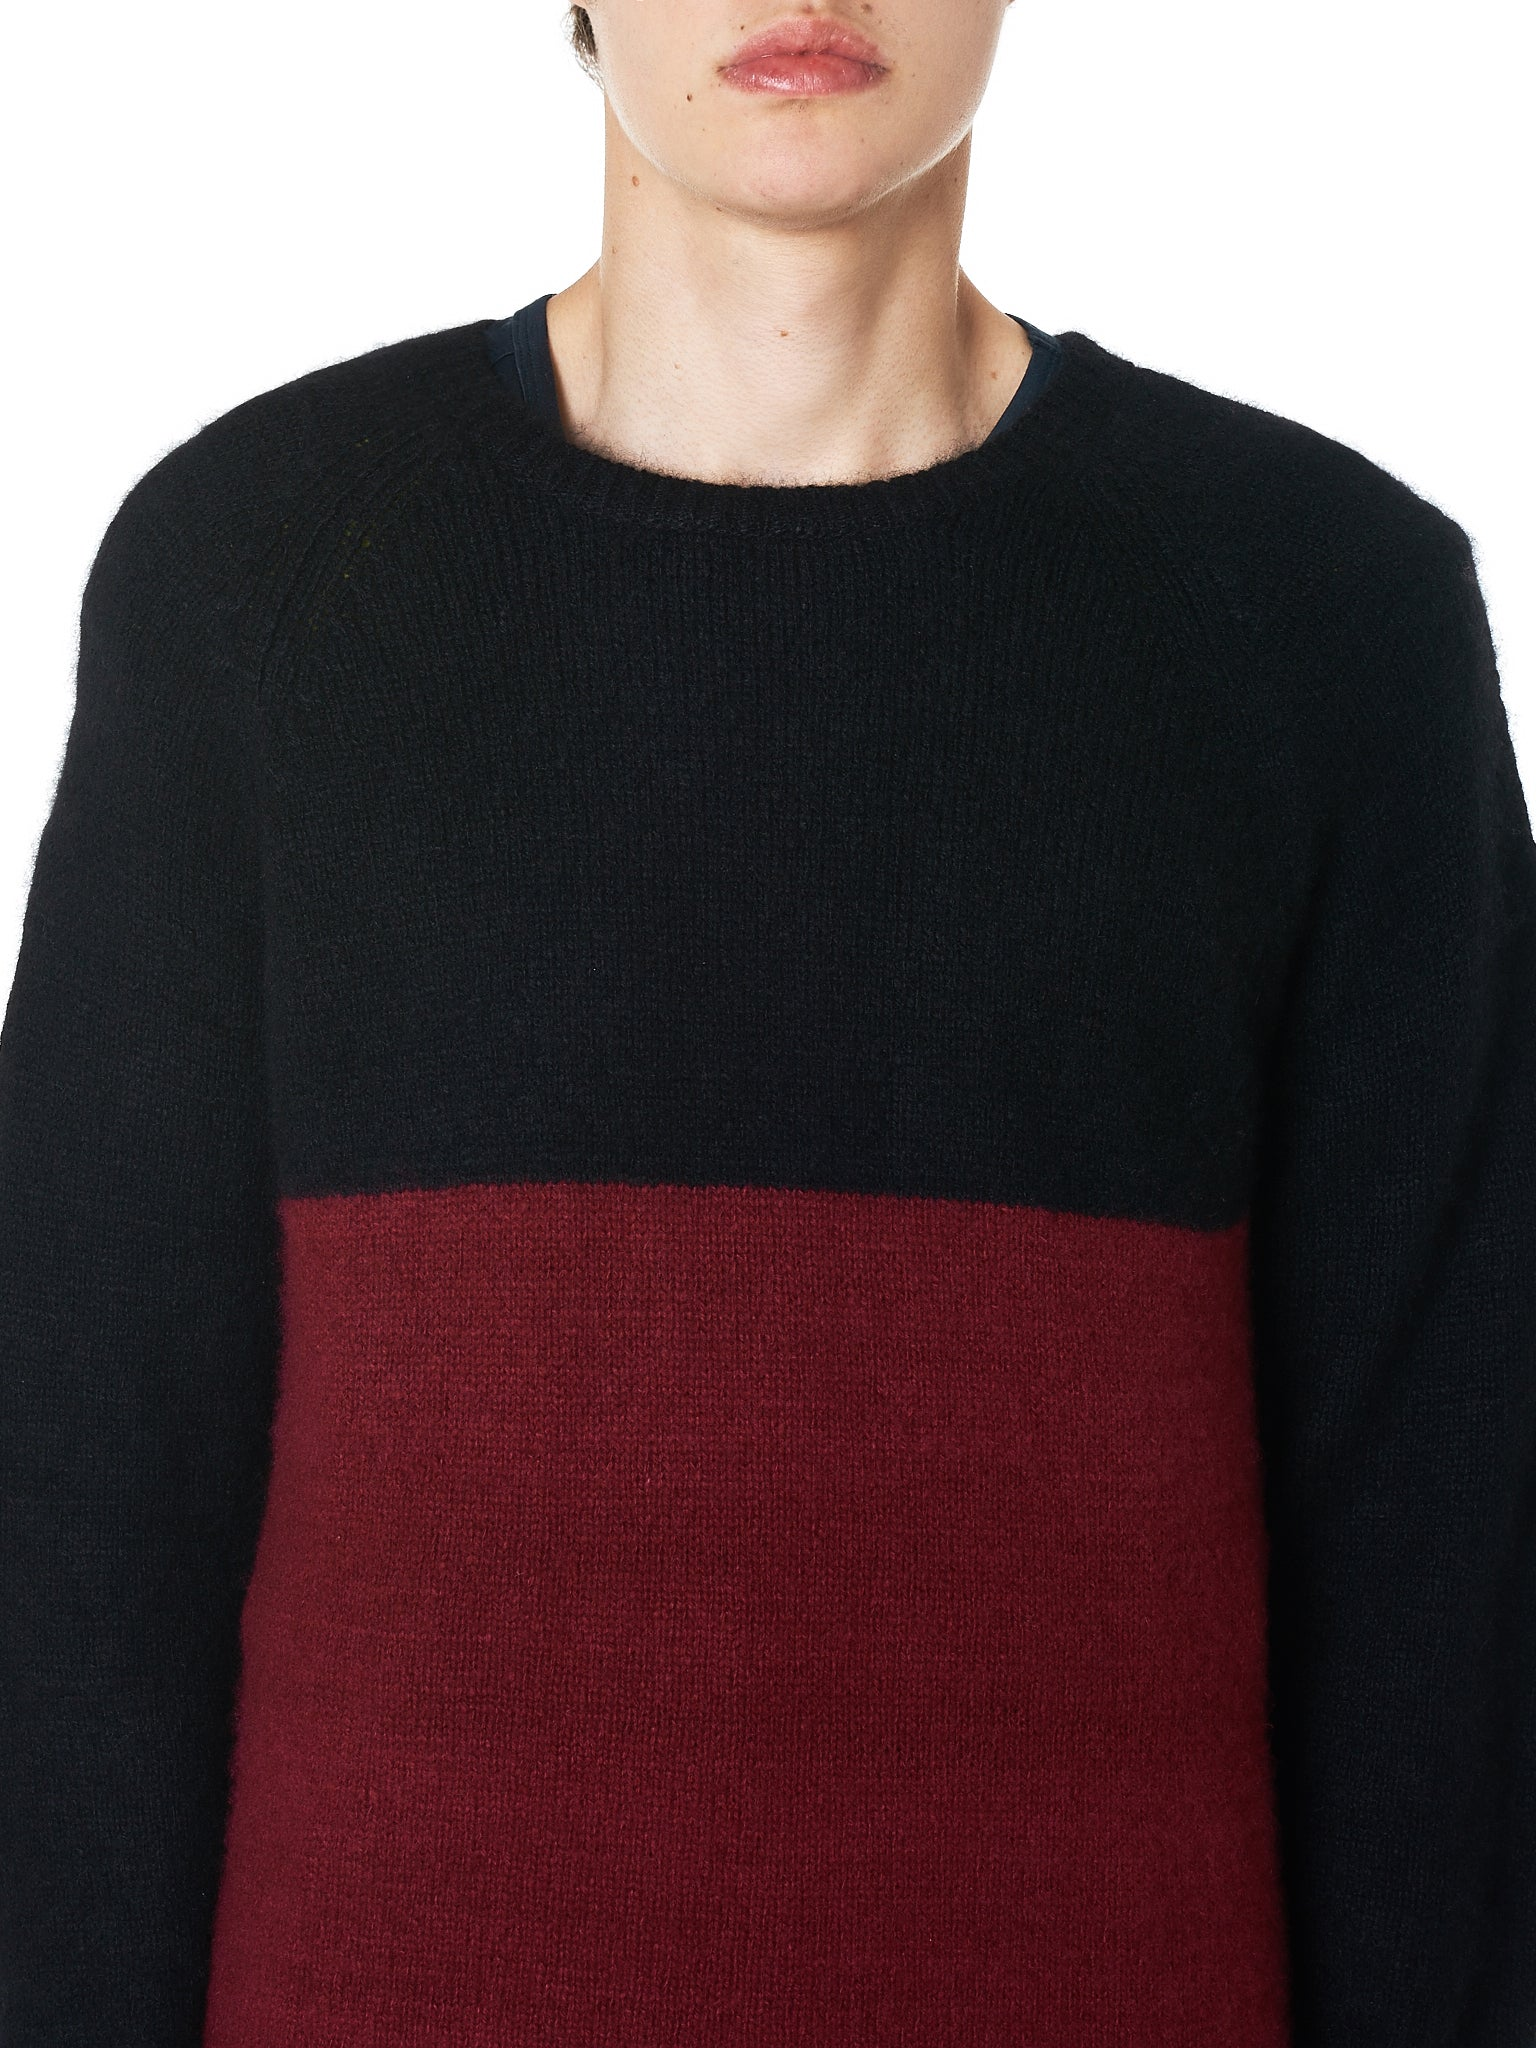 Denis Colomb Sweater - Hlorenzo Detail 1